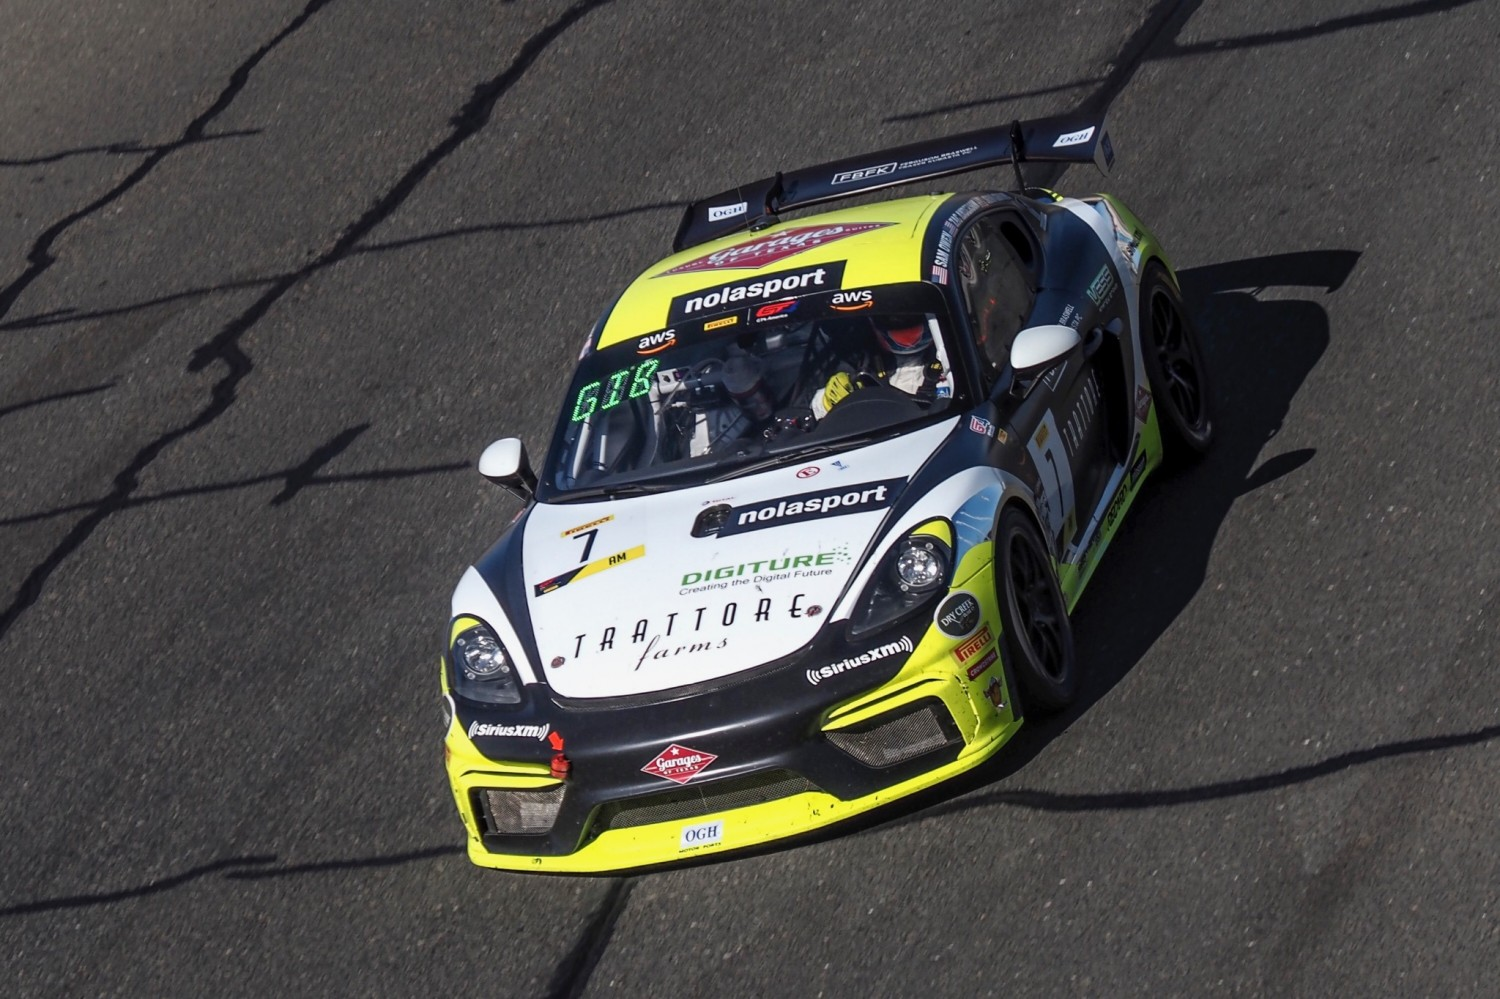 NOLASPORT On Top of Pirelli GT4 America SprintX Field For Race 1 At Sonoma